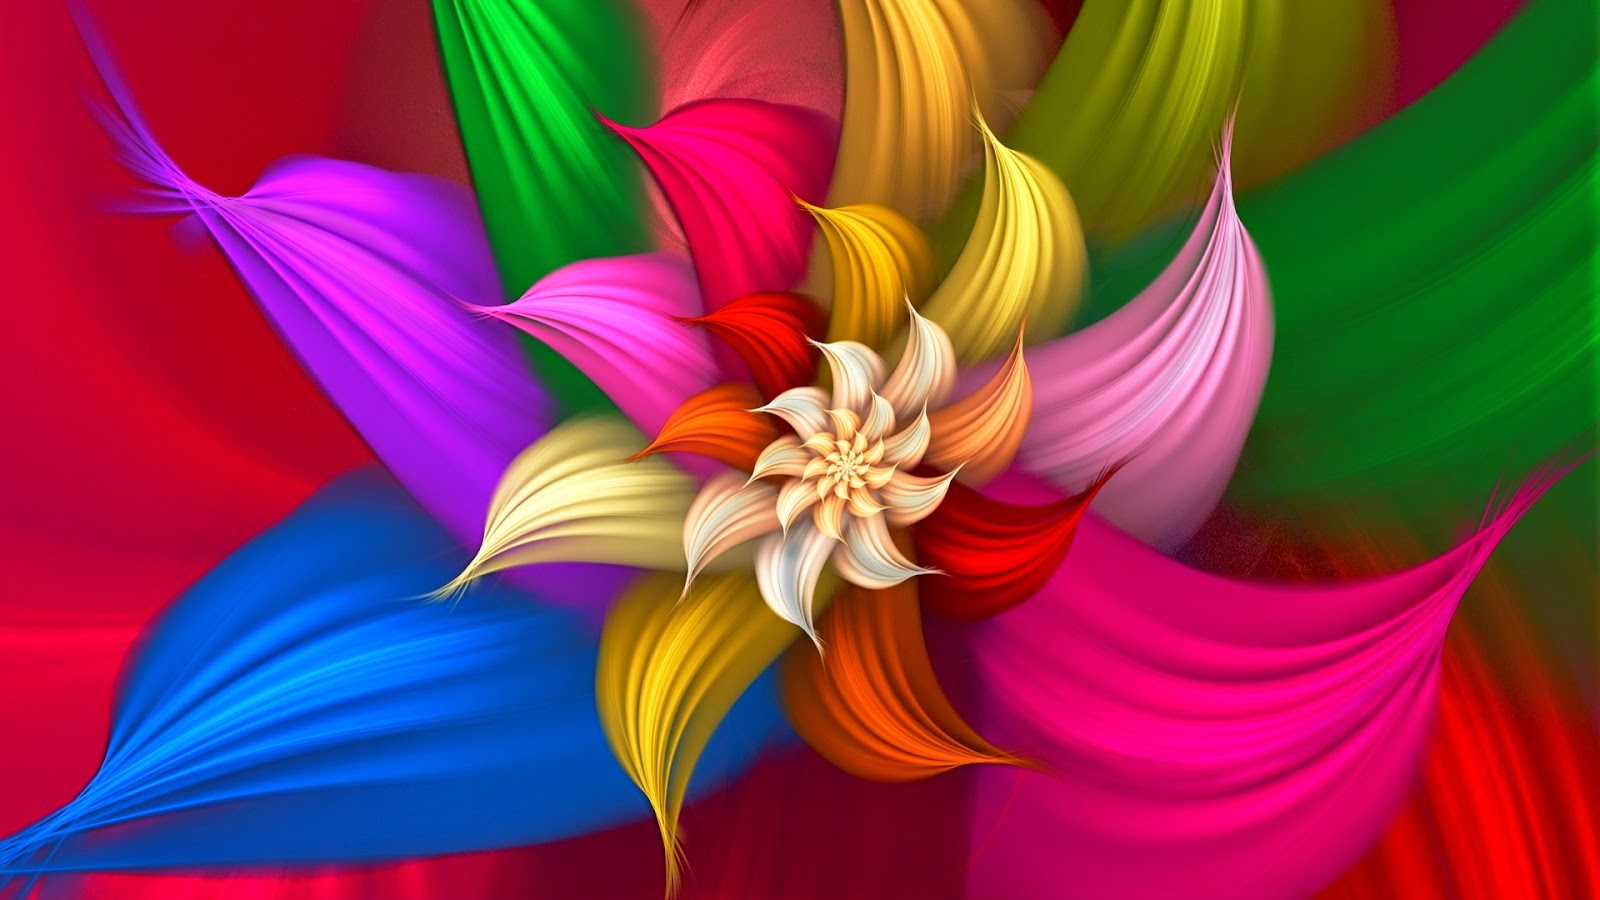 Abstract Flowers wallpaper